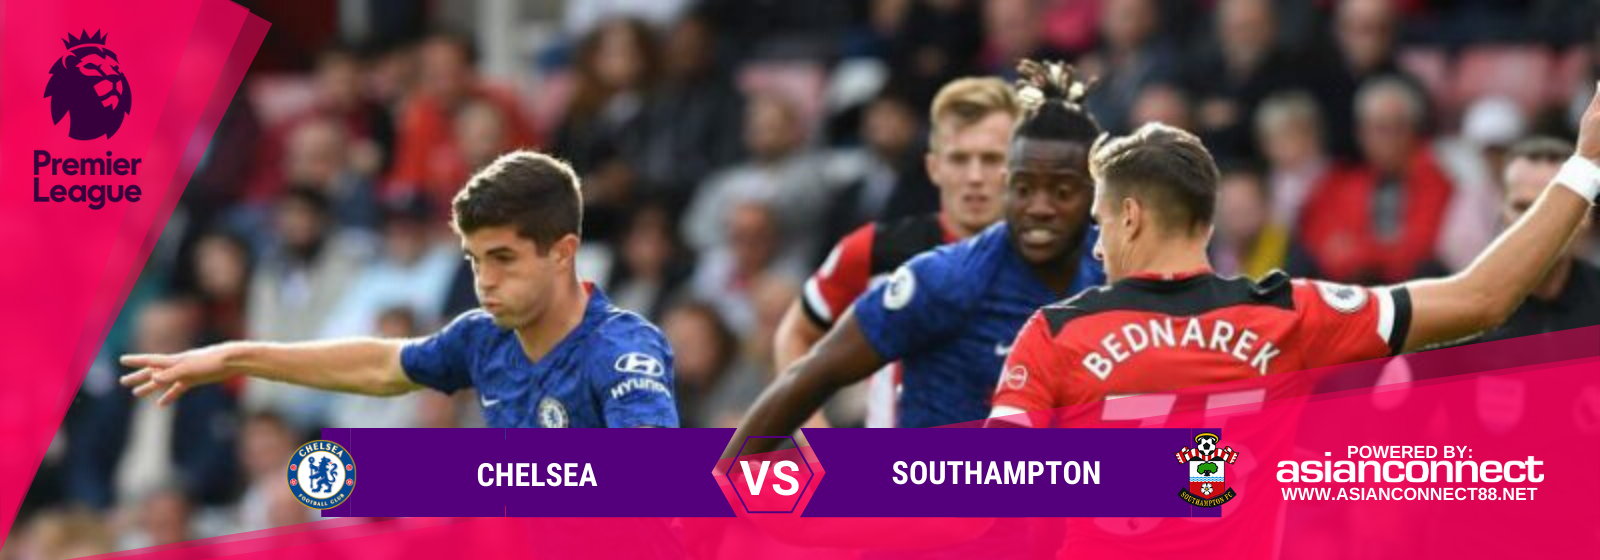 Asianconnect: Chelsea vs Southampton